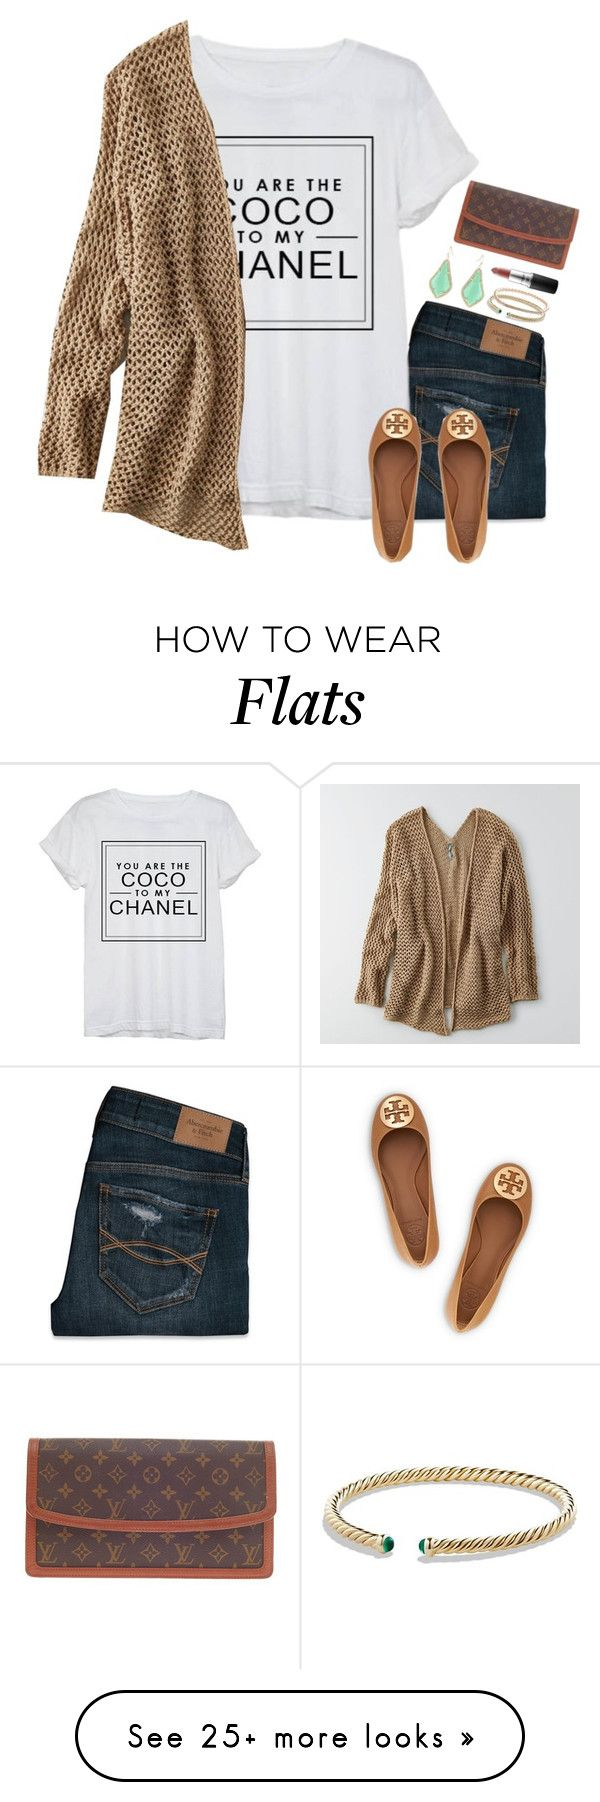 """""""Are you the Coco to my Chanel?"""" by thedancersophie on Polyvore featuring Abercrombie & Fitch, Chanel, American Eagle Outfitters, Tory Burch, David Yurman, Kendra Scott, LC Lauren Conrad, Louis Vuitton and MAC Cosmetics"""